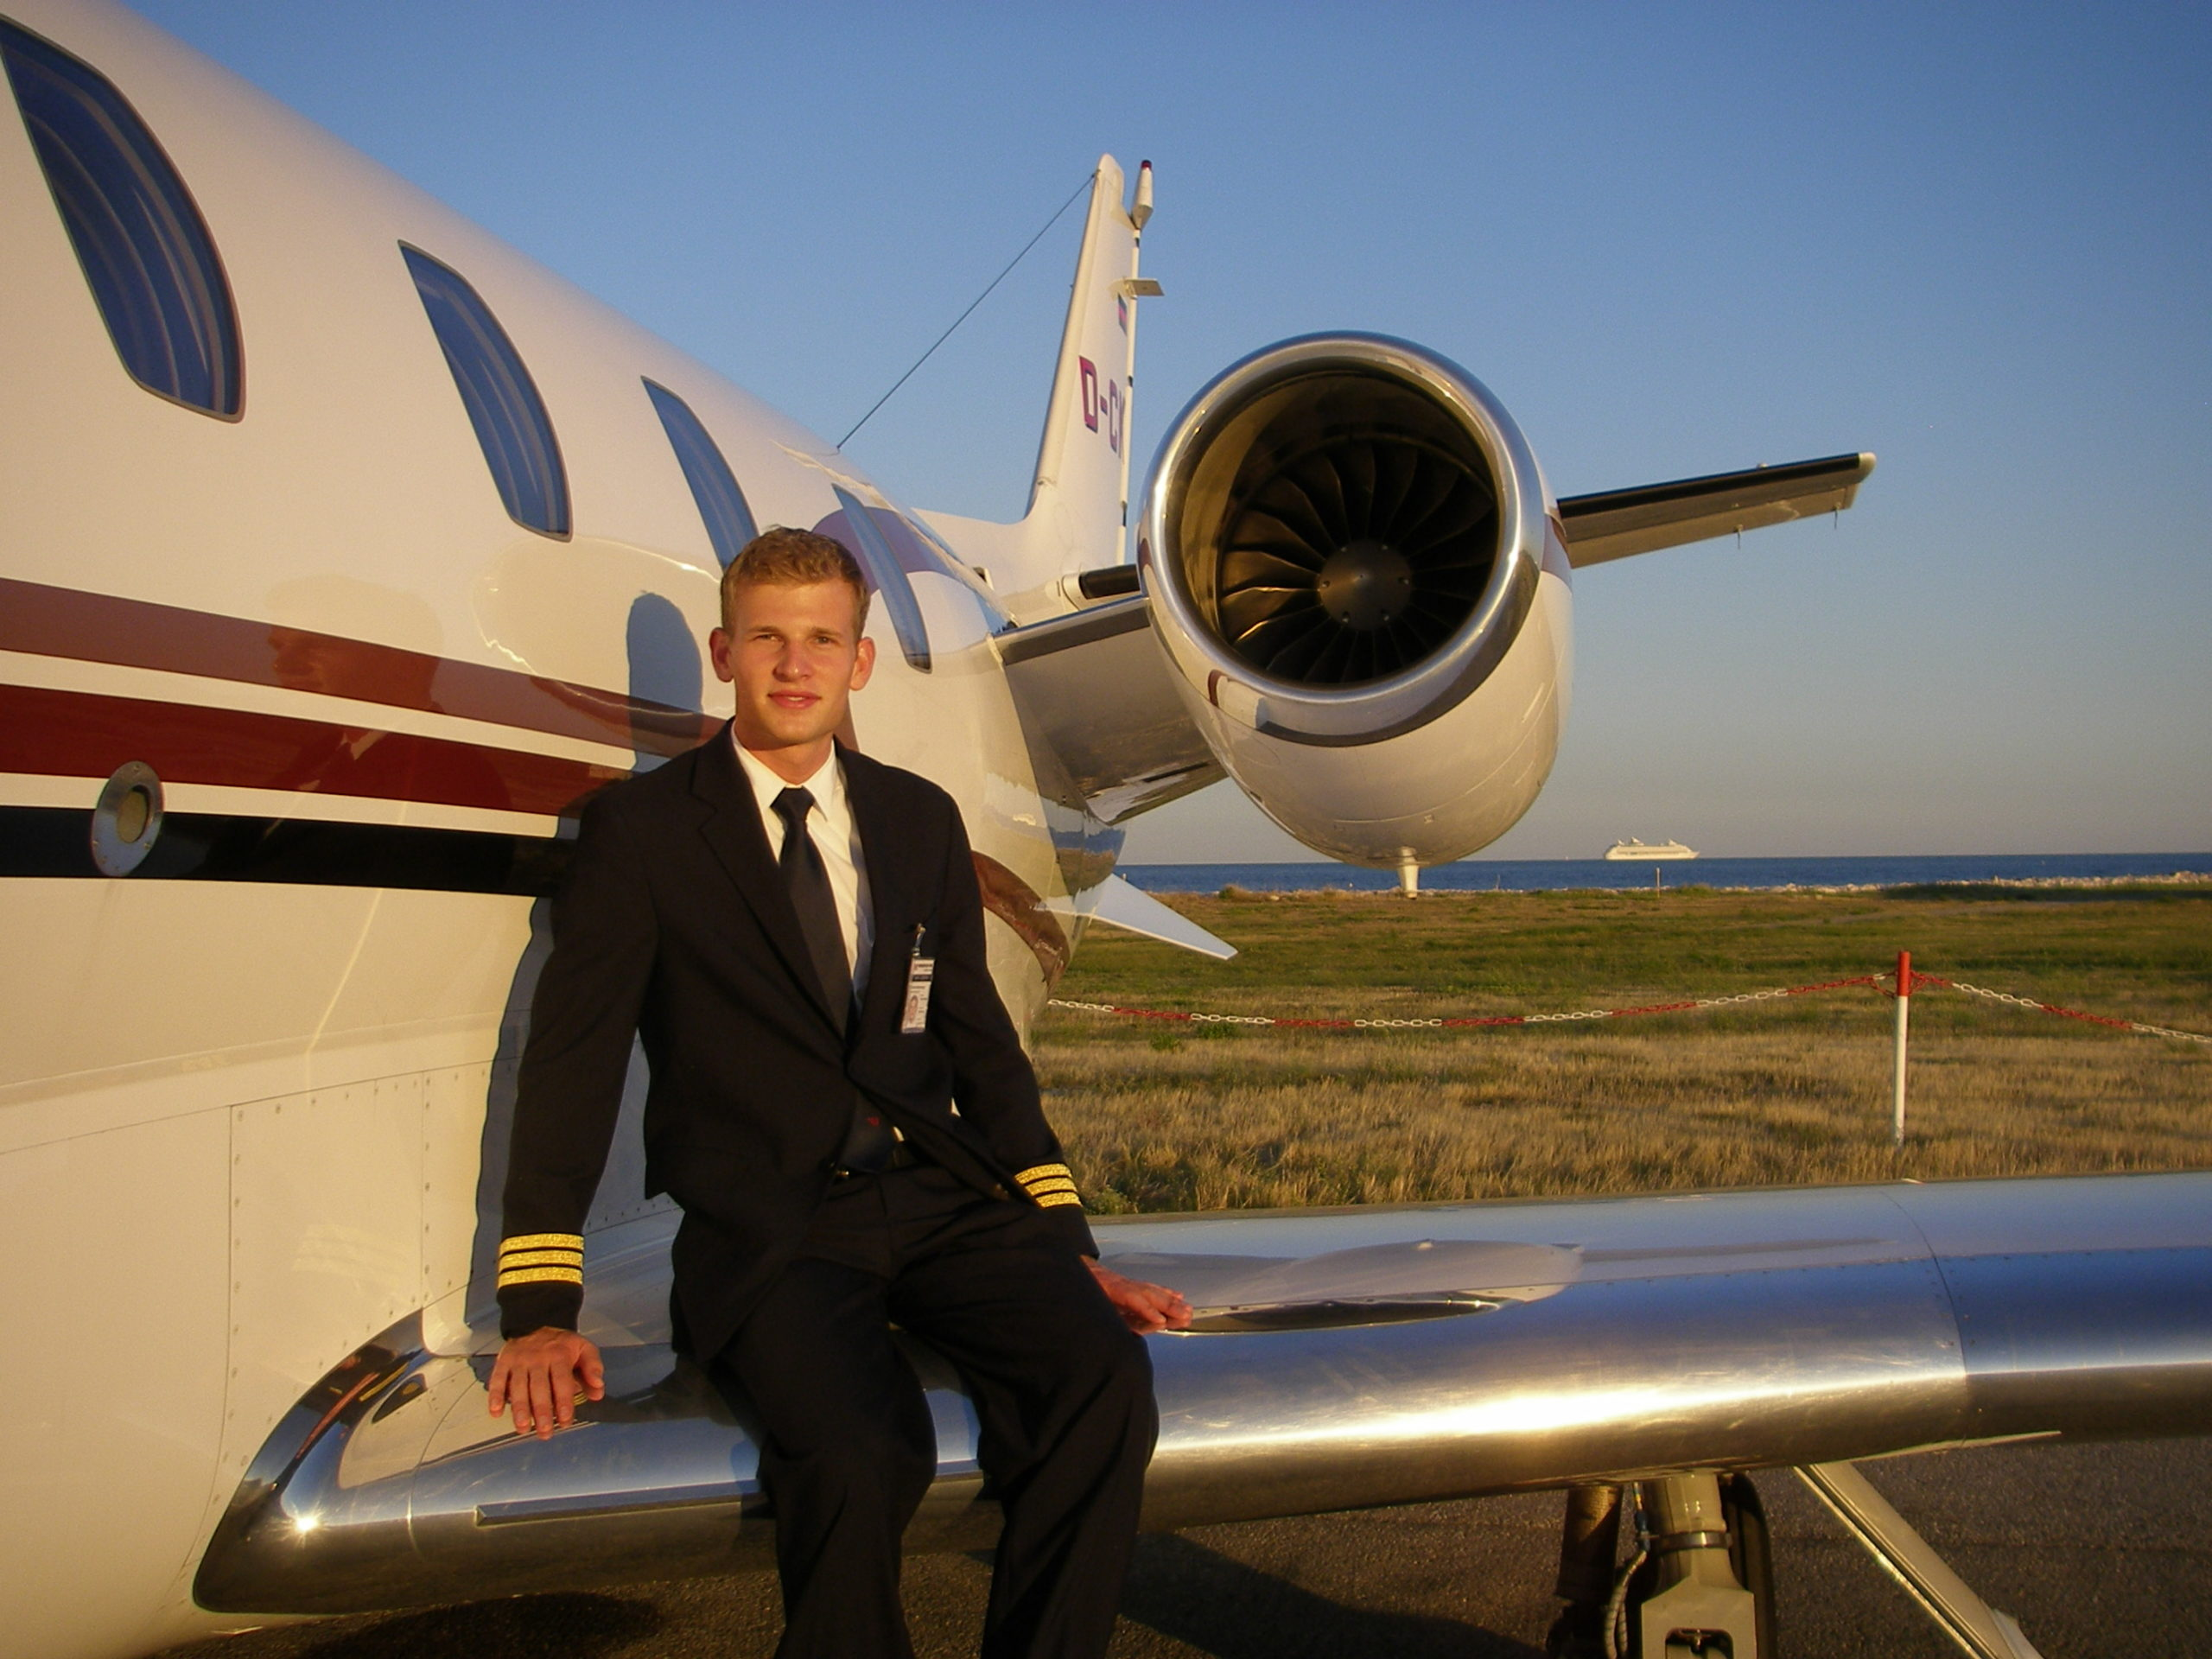 Pilot patrick in nice on the Cessna Citation XLS